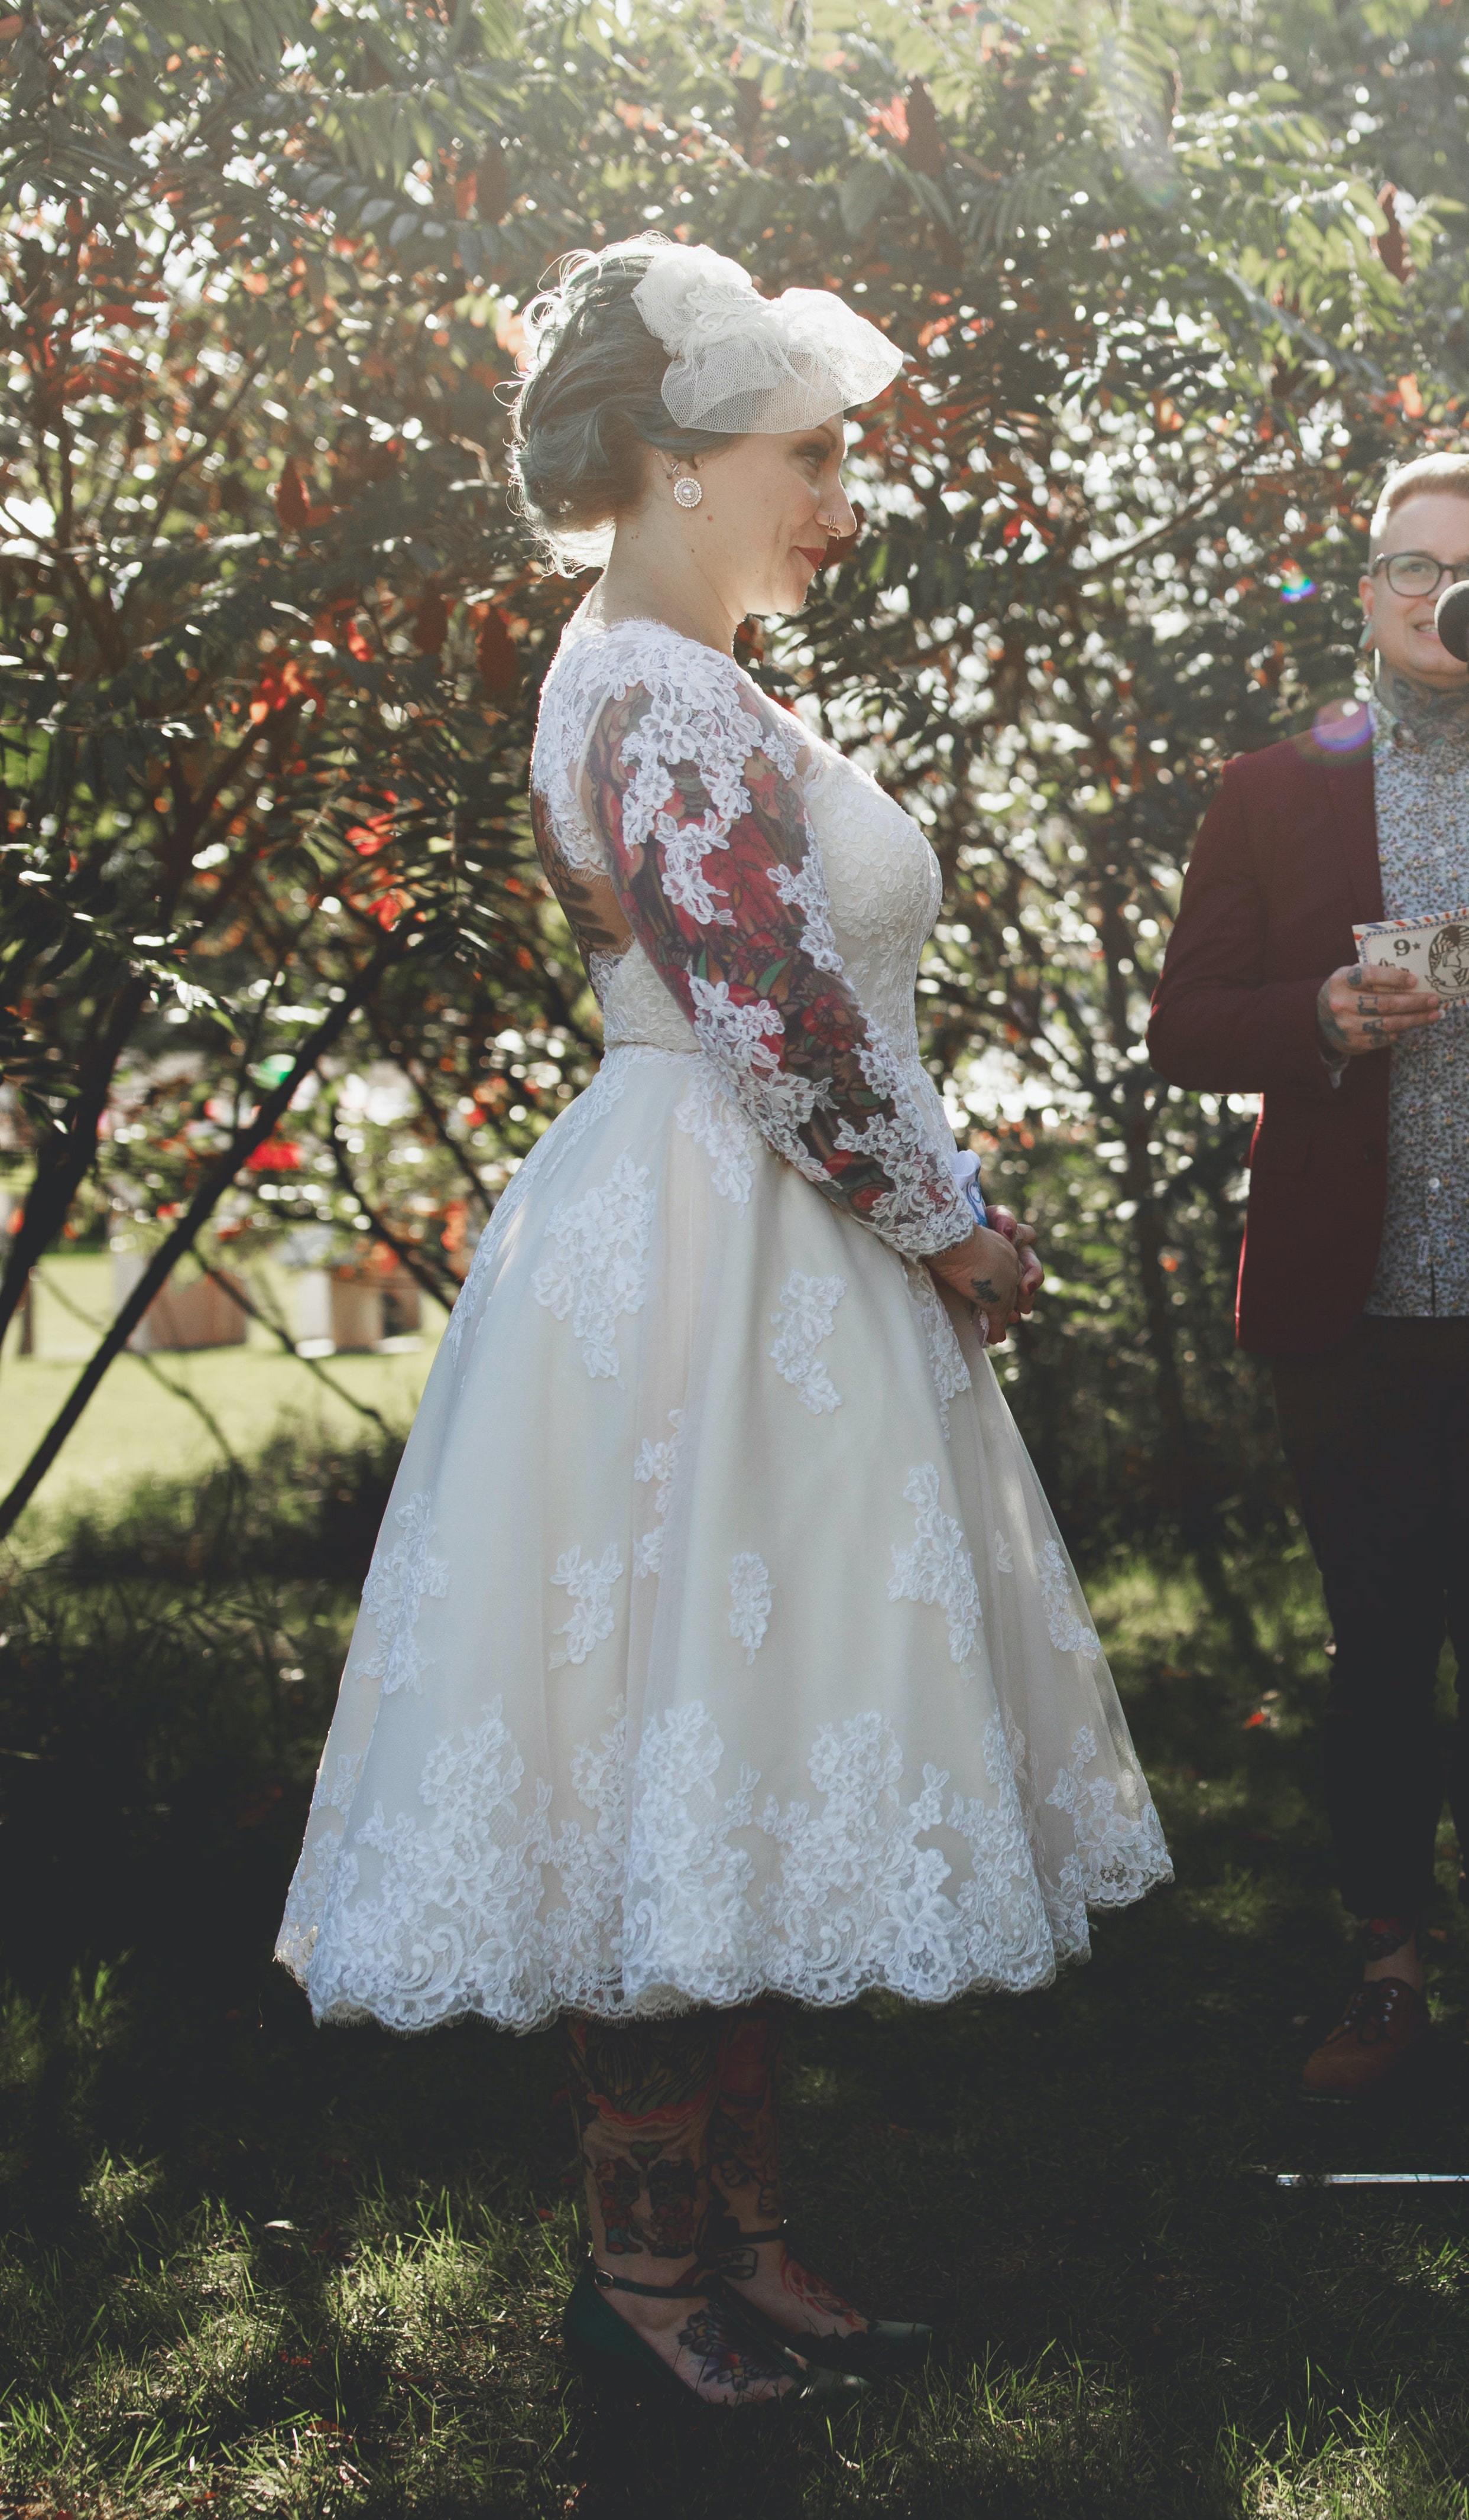 Anomalie Custom Online Wedding Dresses - Create your perfect tea-length, short, vintage dress, with floral applique and long sleeves.